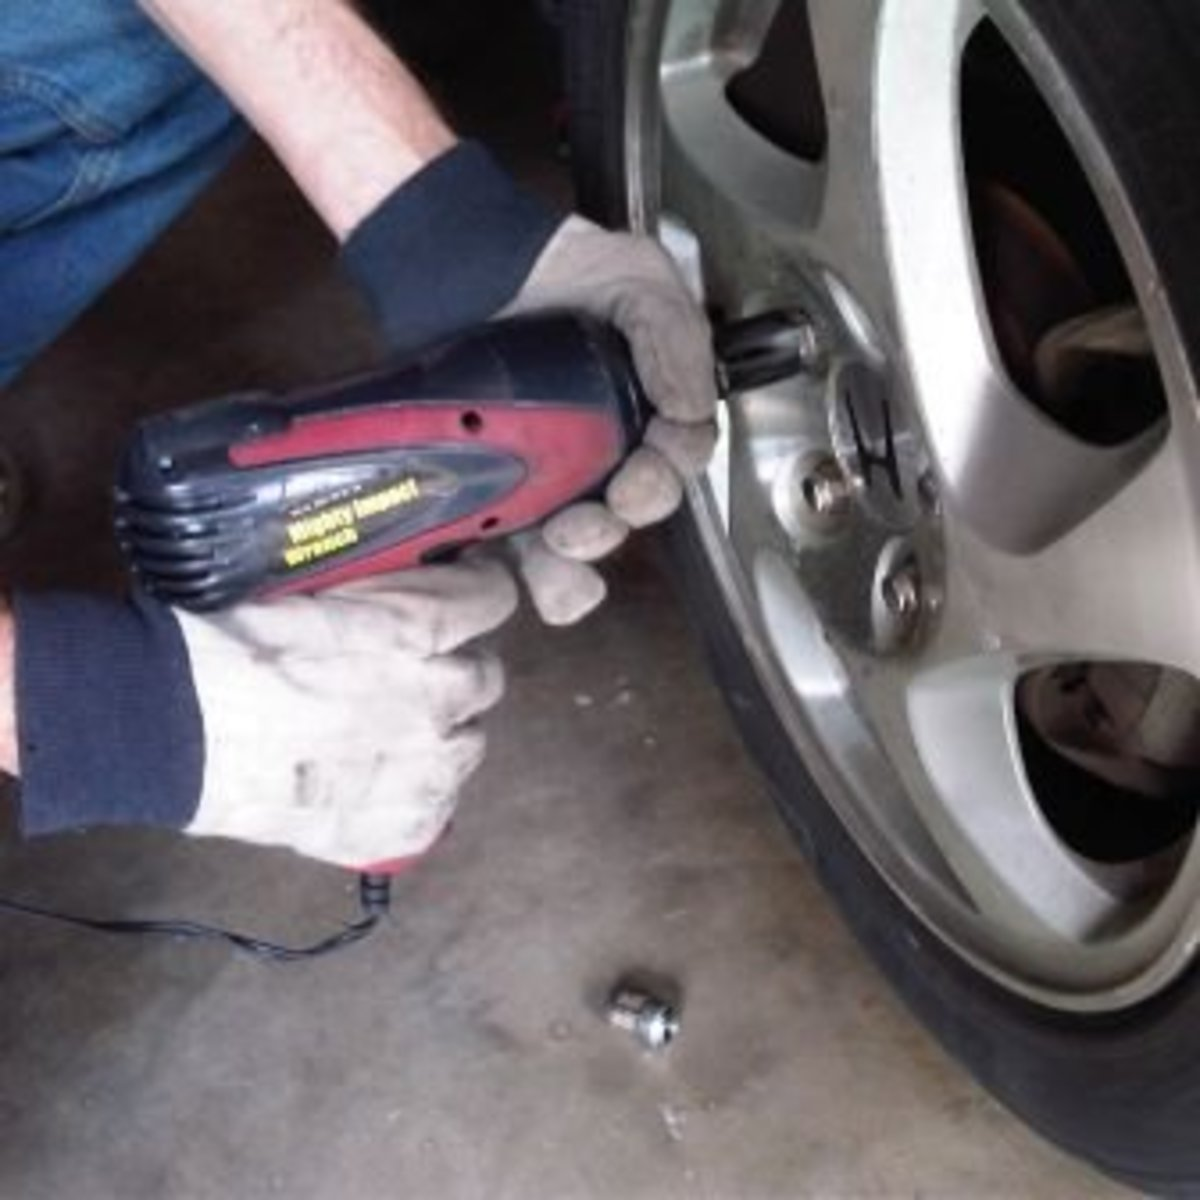 Stuck Lug Nuts Are Easy Work For This Wagan Impact Wrench That Plugs Into A 12